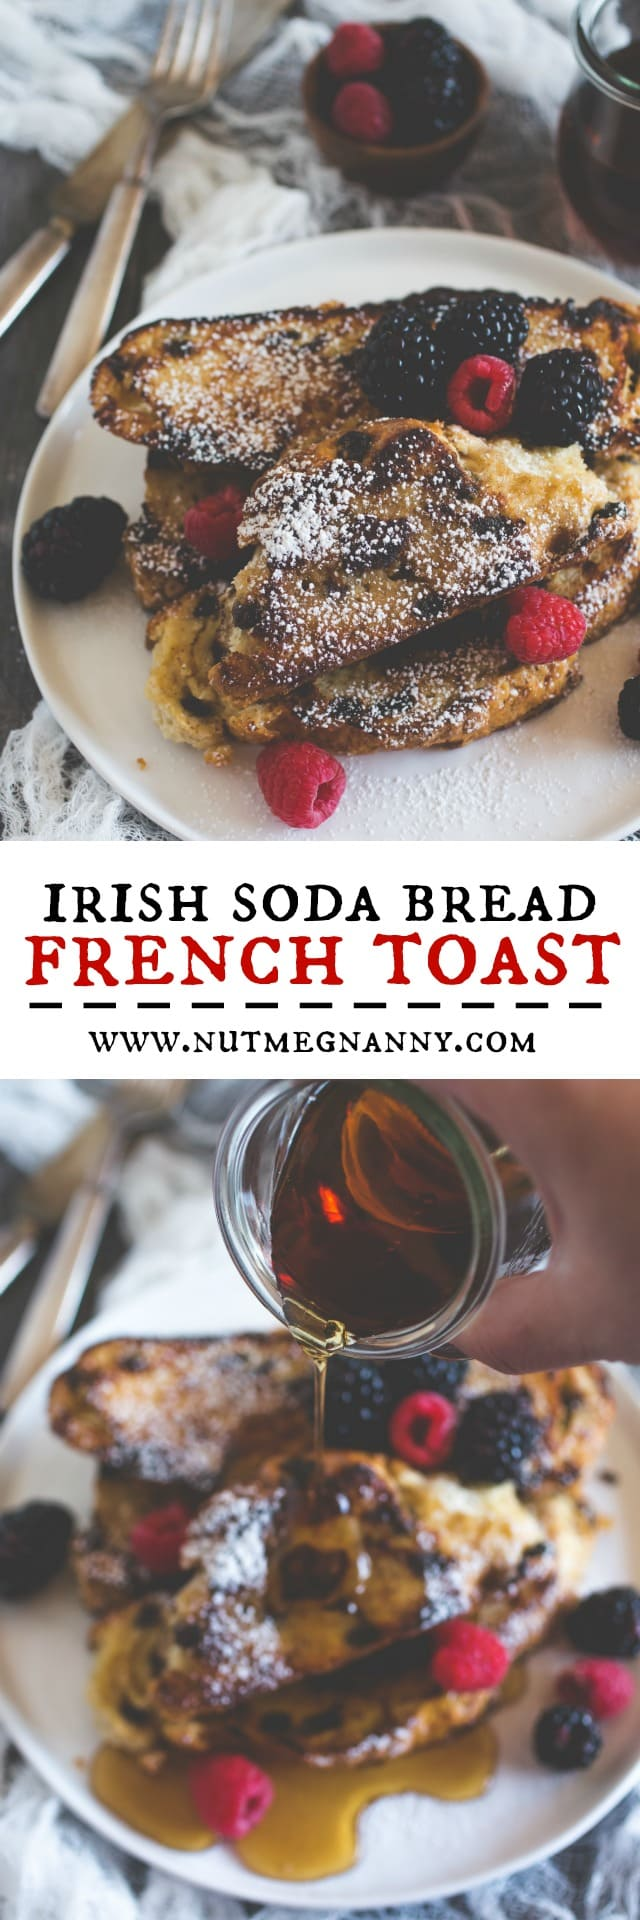 This Irish soda bread French toast is toasted until browned and topped with powdered sugar and fresh berries. Say hello to breakfast! You're gonna love it!